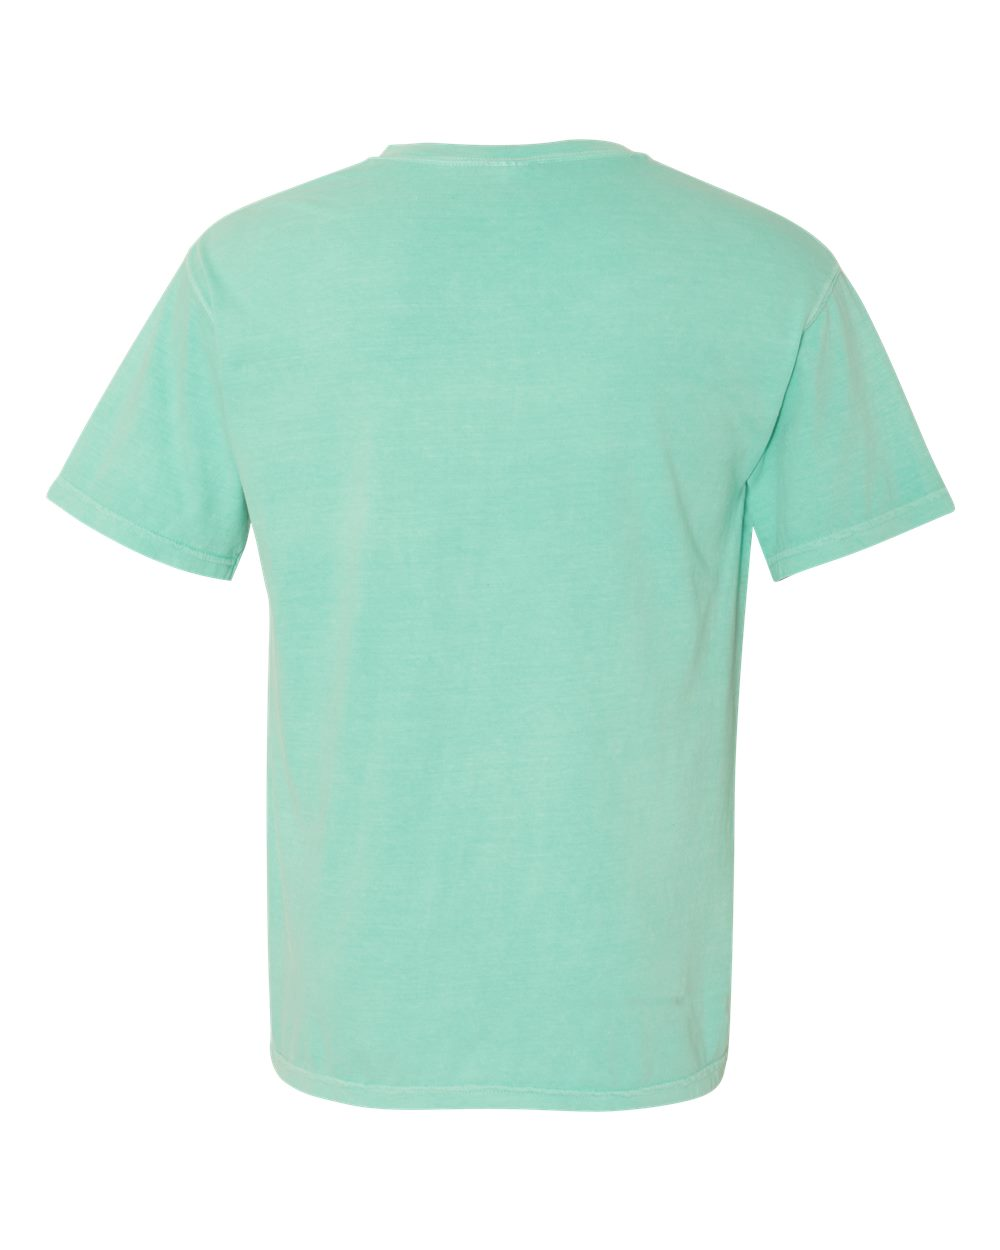 Comfort-Colors-Men-039-s-6-1-oz-Garment-Dyed-Pocket-T-Shirt-6030CC-S-3XL thumbnail 108